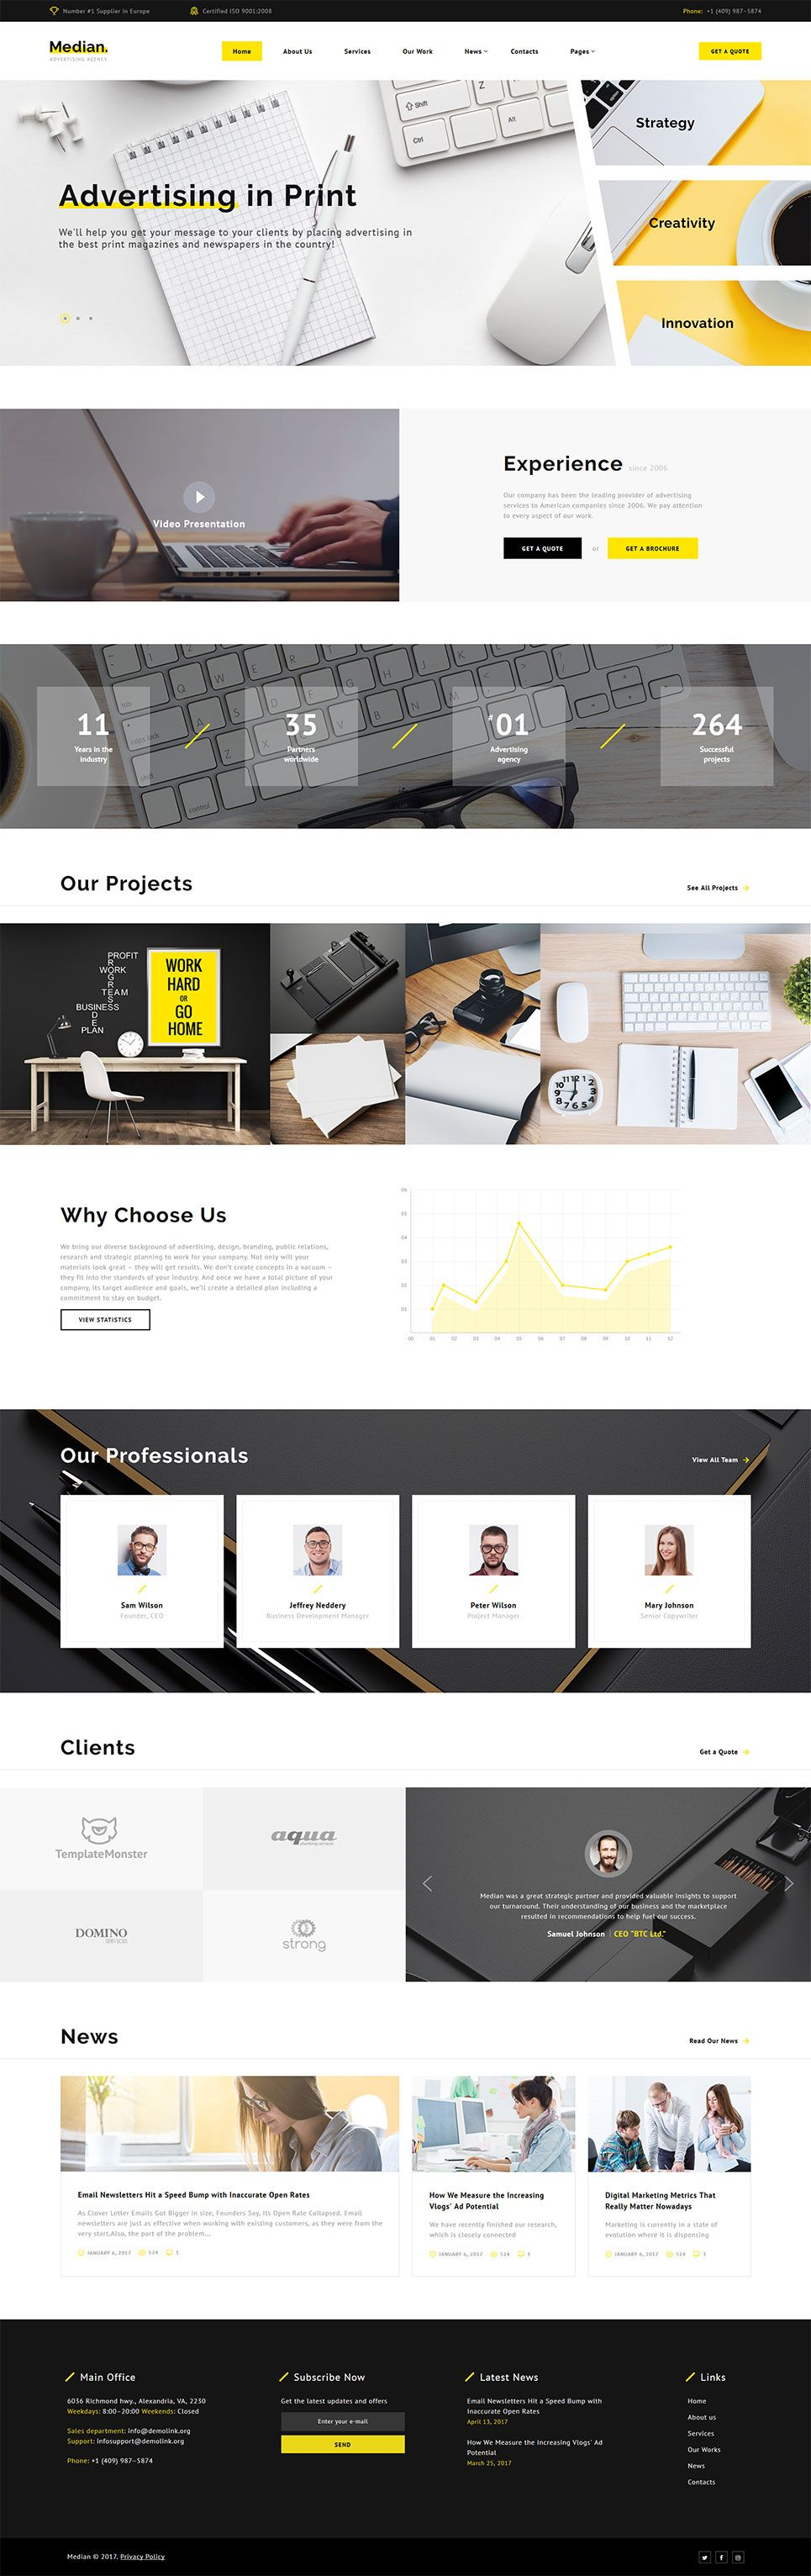 Median - Advertising Agency HTML5 Website Template | Bootstrap ...